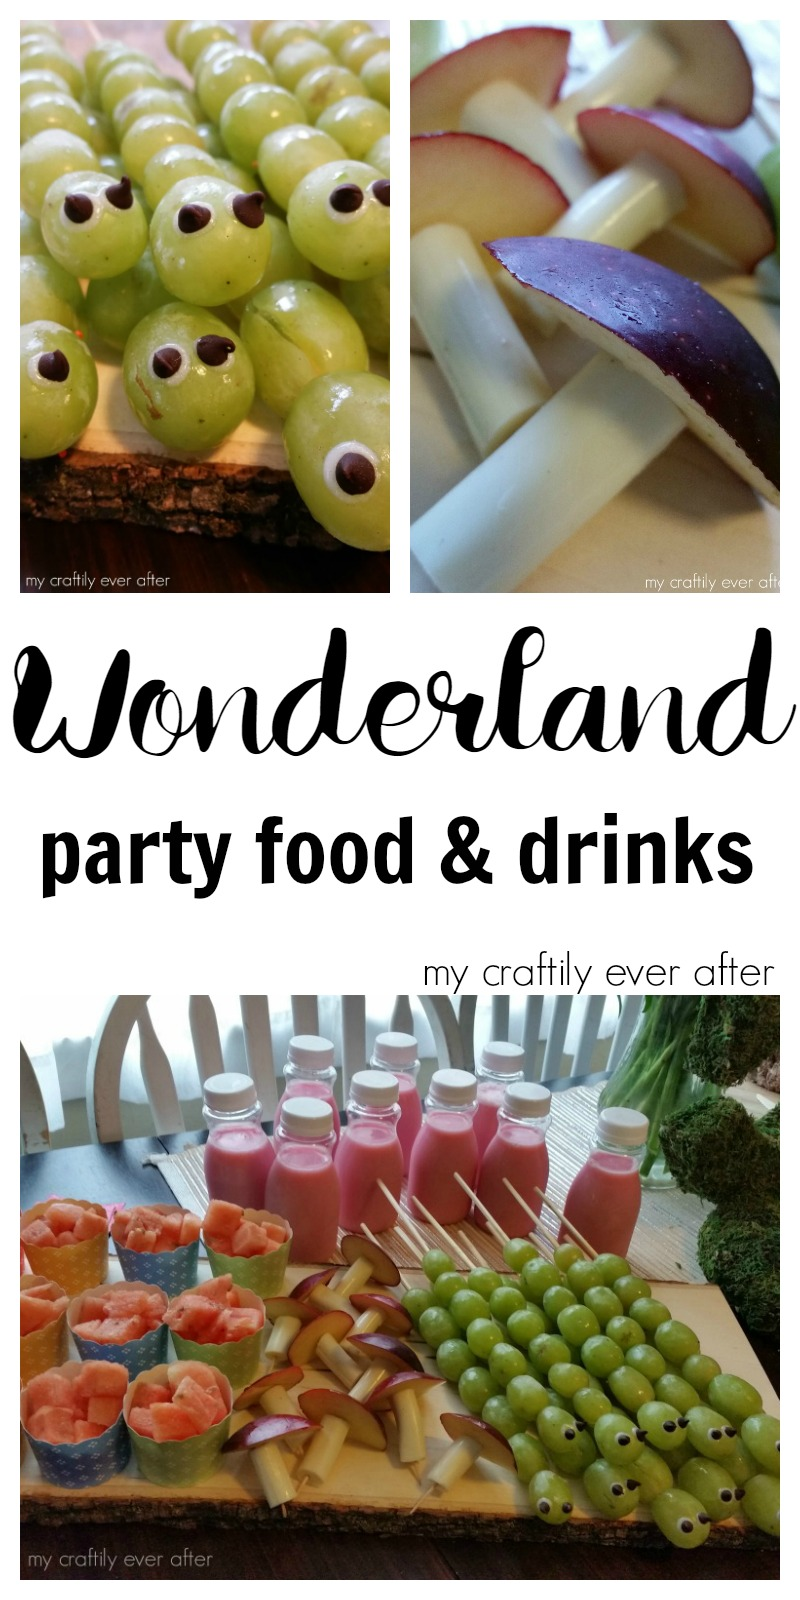 food party drinks wonderland craftily ever parties